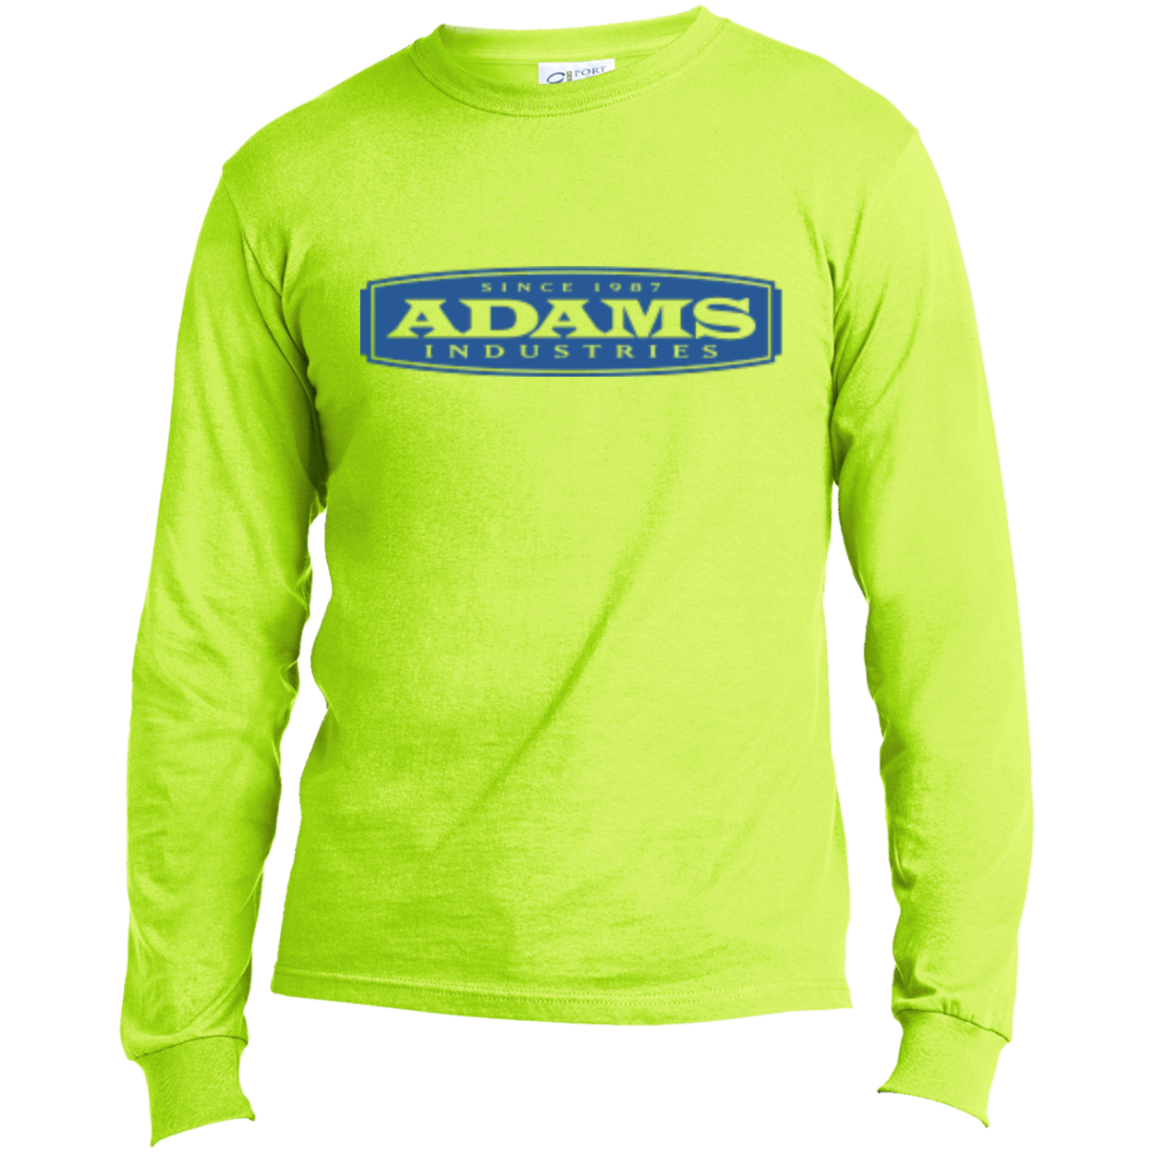 Adams Men's Long Sleeve Cotton T-Shirt